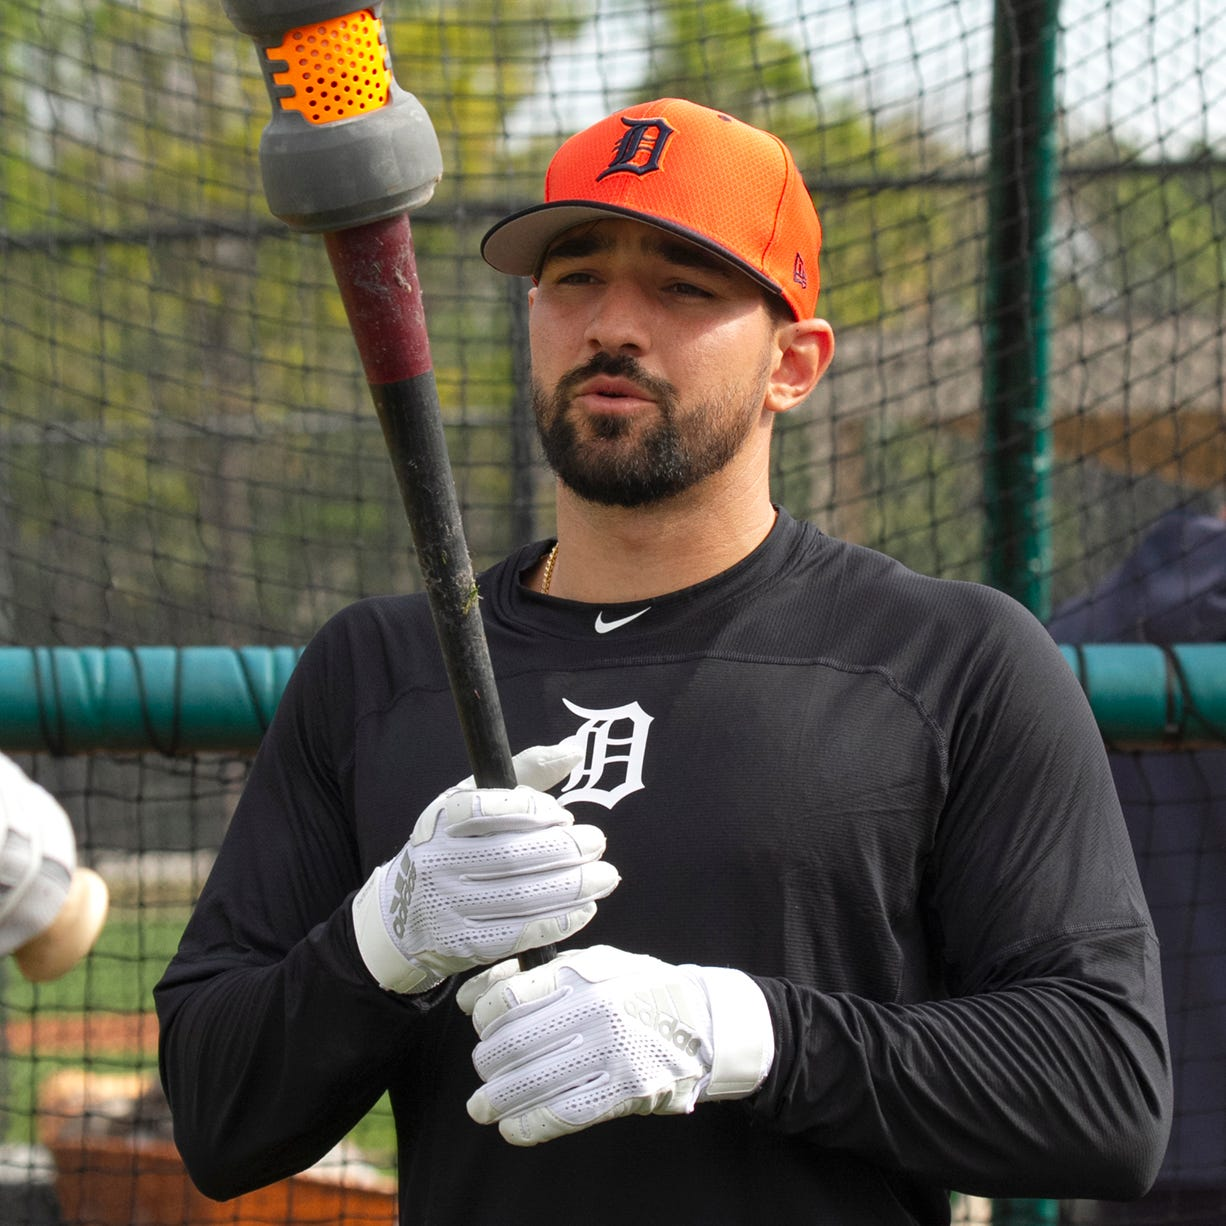 Tigers' Nick Castellanos: 'Wherever I play, I'm playing to win'